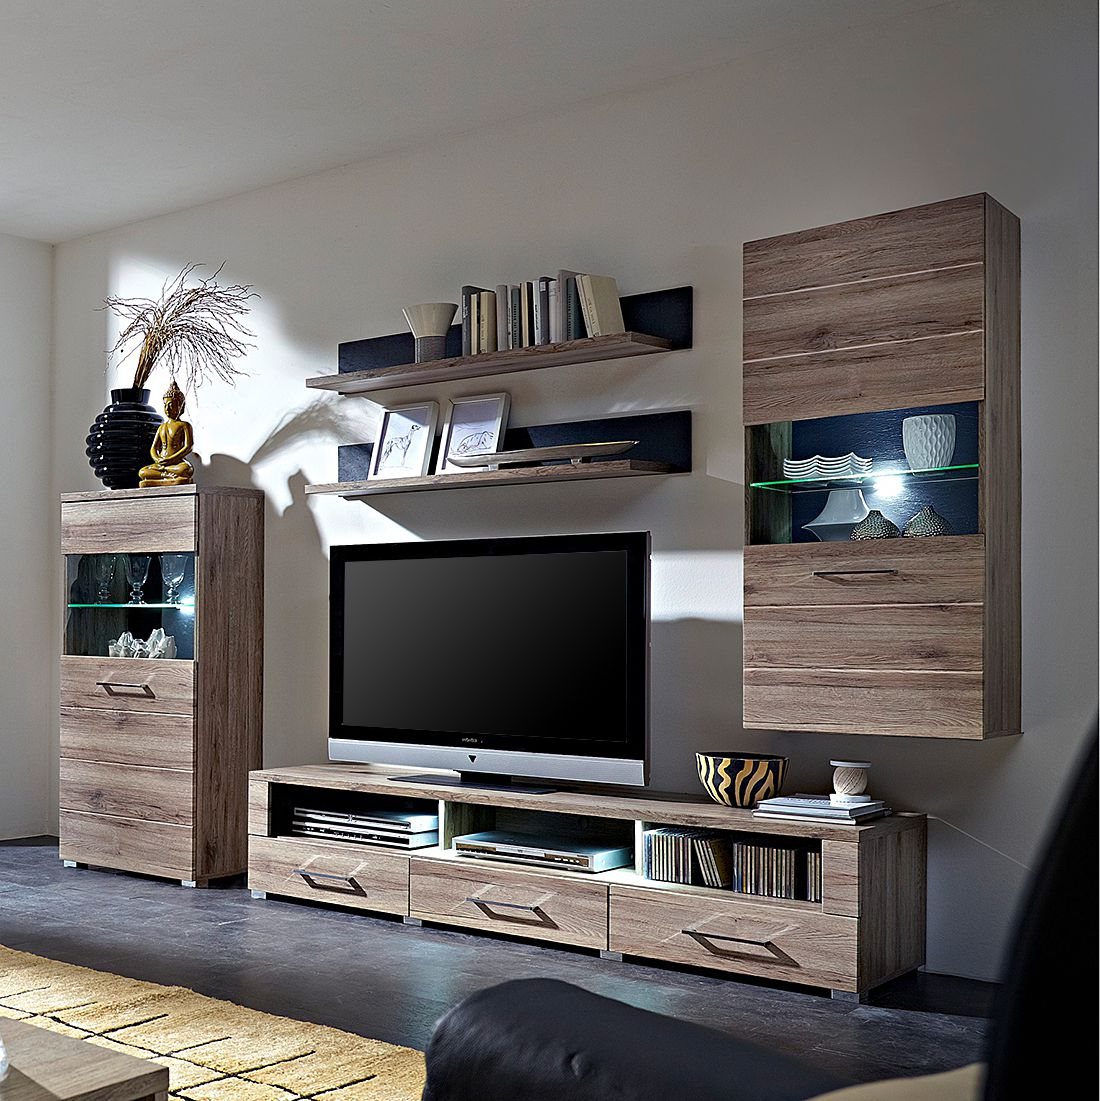 wohnwand adorno iii 5 teilig san remo eiche dekor schiefer dekor. Black Bedroom Furniture Sets. Home Design Ideas